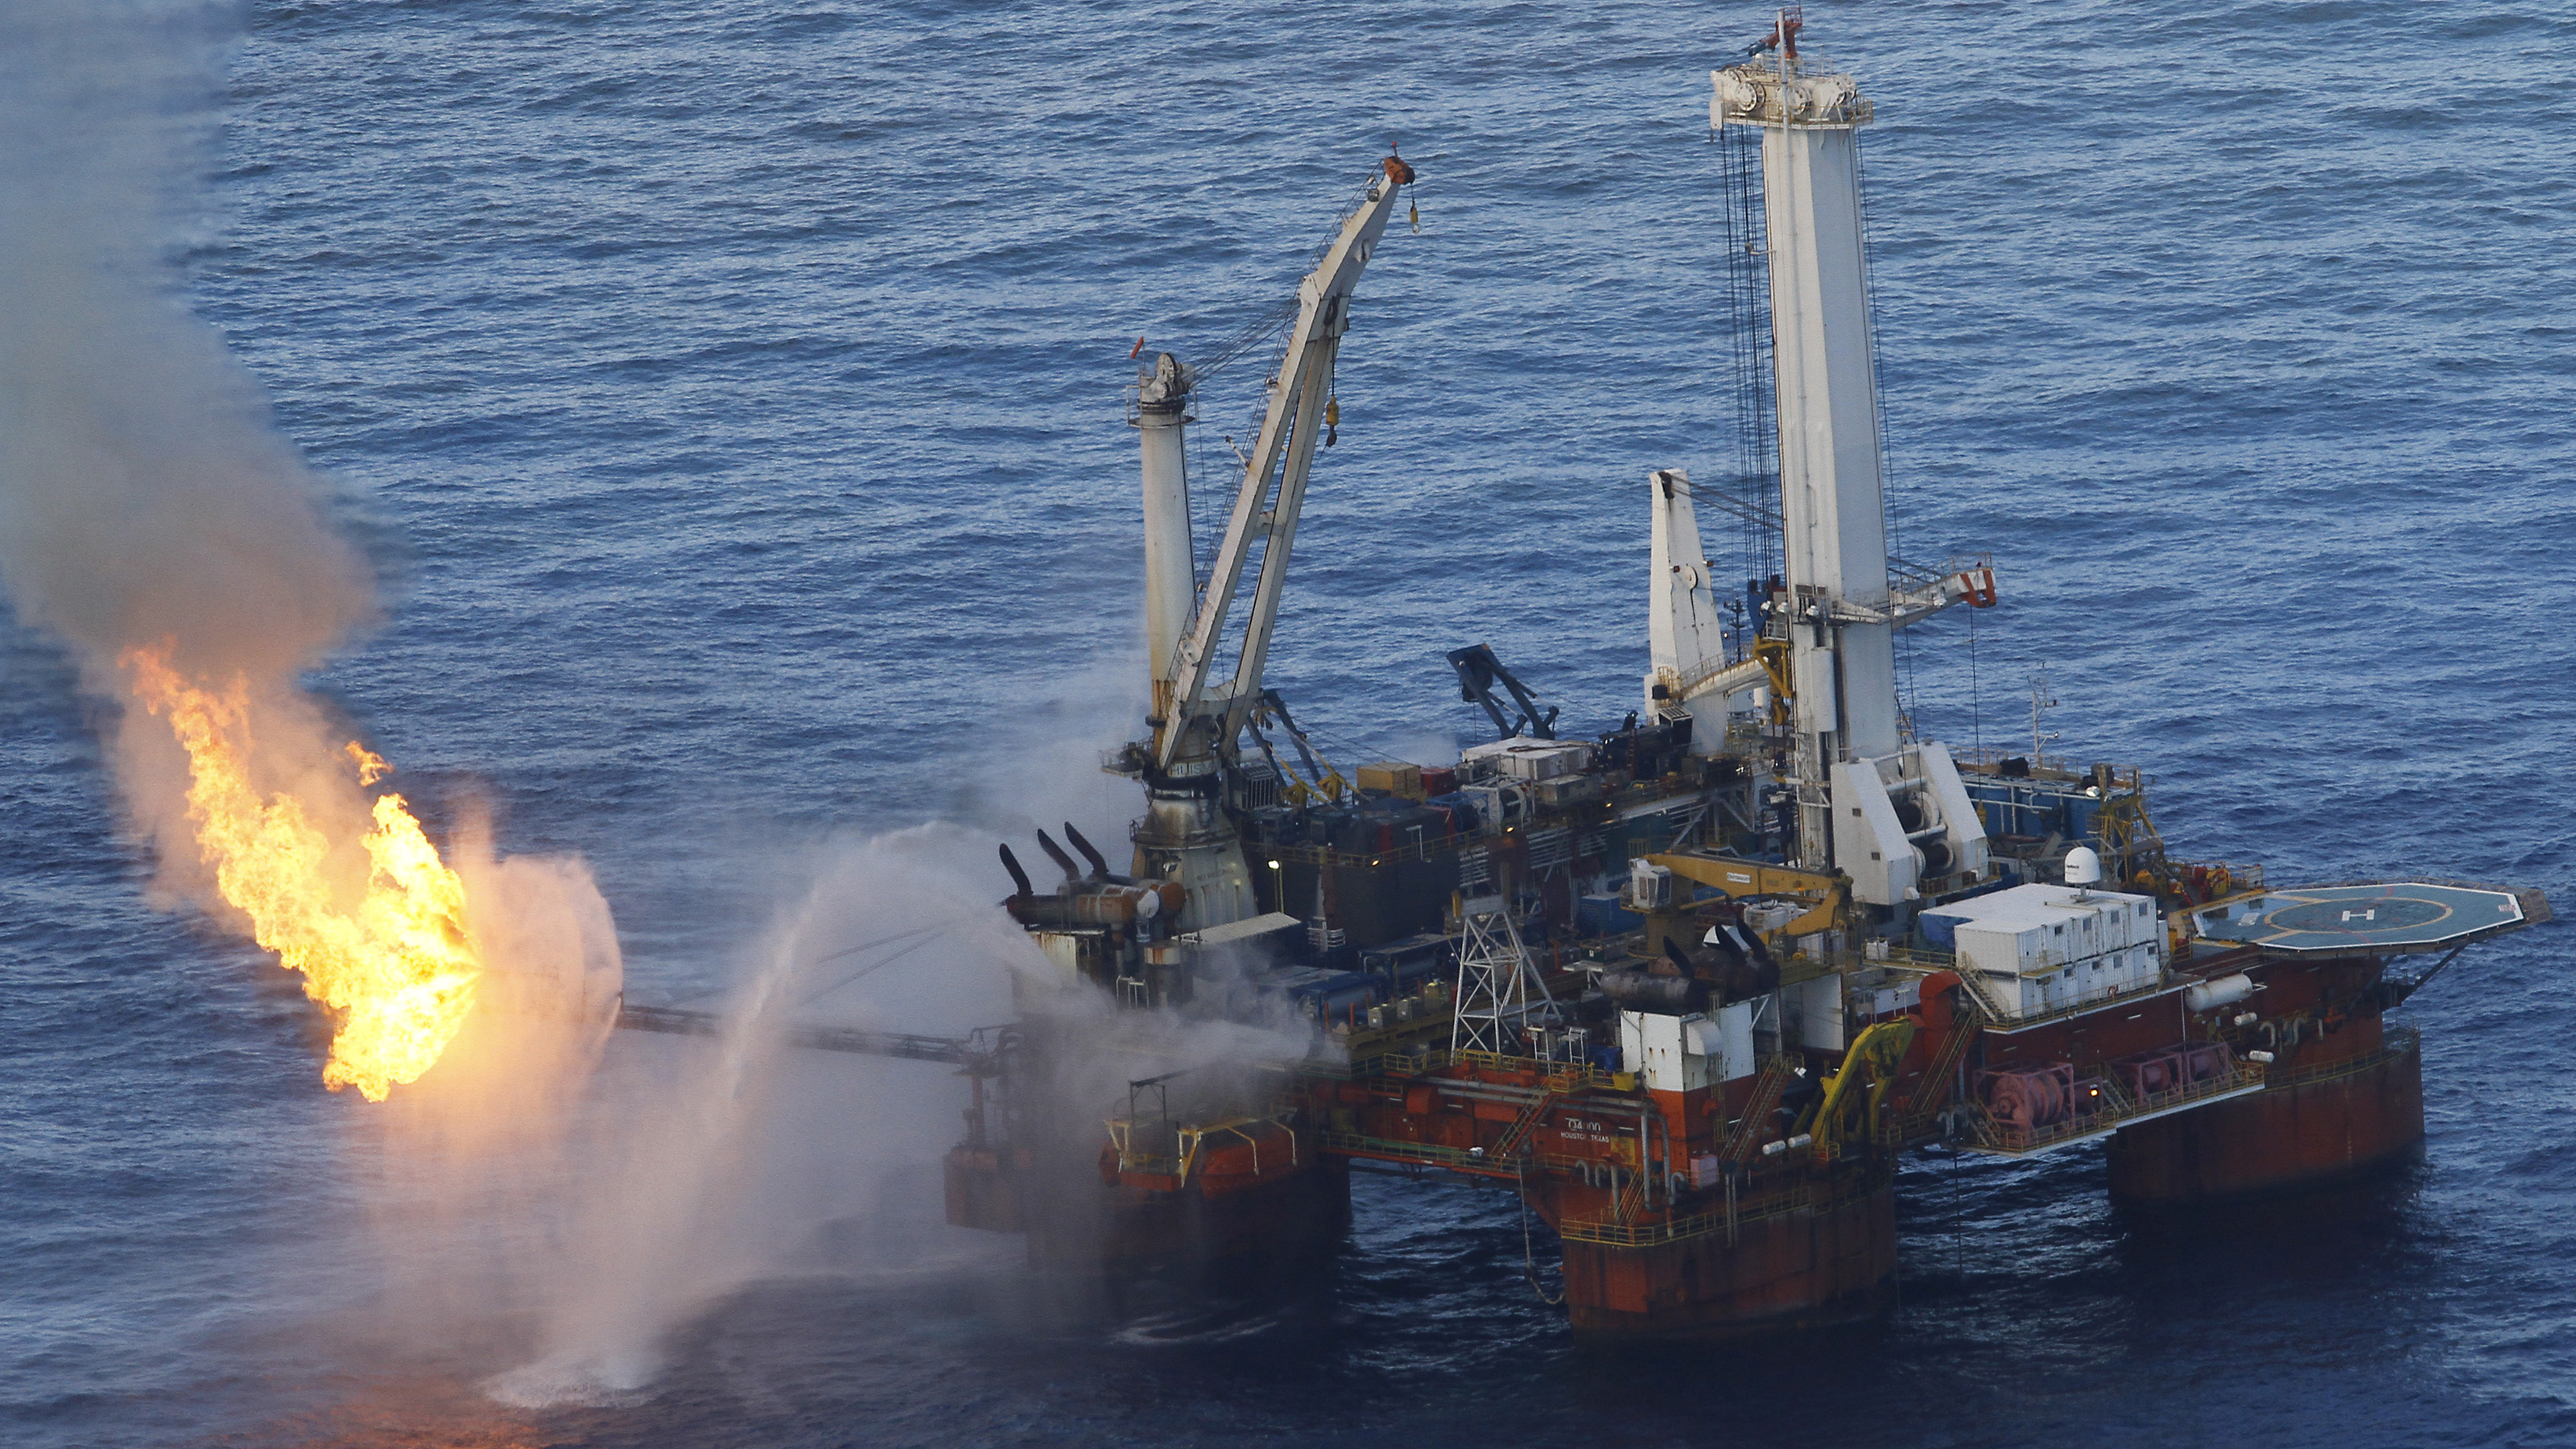 Fire and smoke rise from the Q4000 oil vessel, as drilling of two relief wells continue, in the Gulf of Mexico, July 4, 2010. A commission appointed by President Barack Obama to study the causes of the Gulf of Mexico oil spill gives academics and environmentalists a prominent role in making recommendations about the future of offshore drilling in the United States.    REUTERS/Lyle W. Ratliff (UNITED STATES - Tags: DISASTER ENERGY ENVIRONMENT BUSINESS IMAGES OF THE DAY) - RTR2G3S0